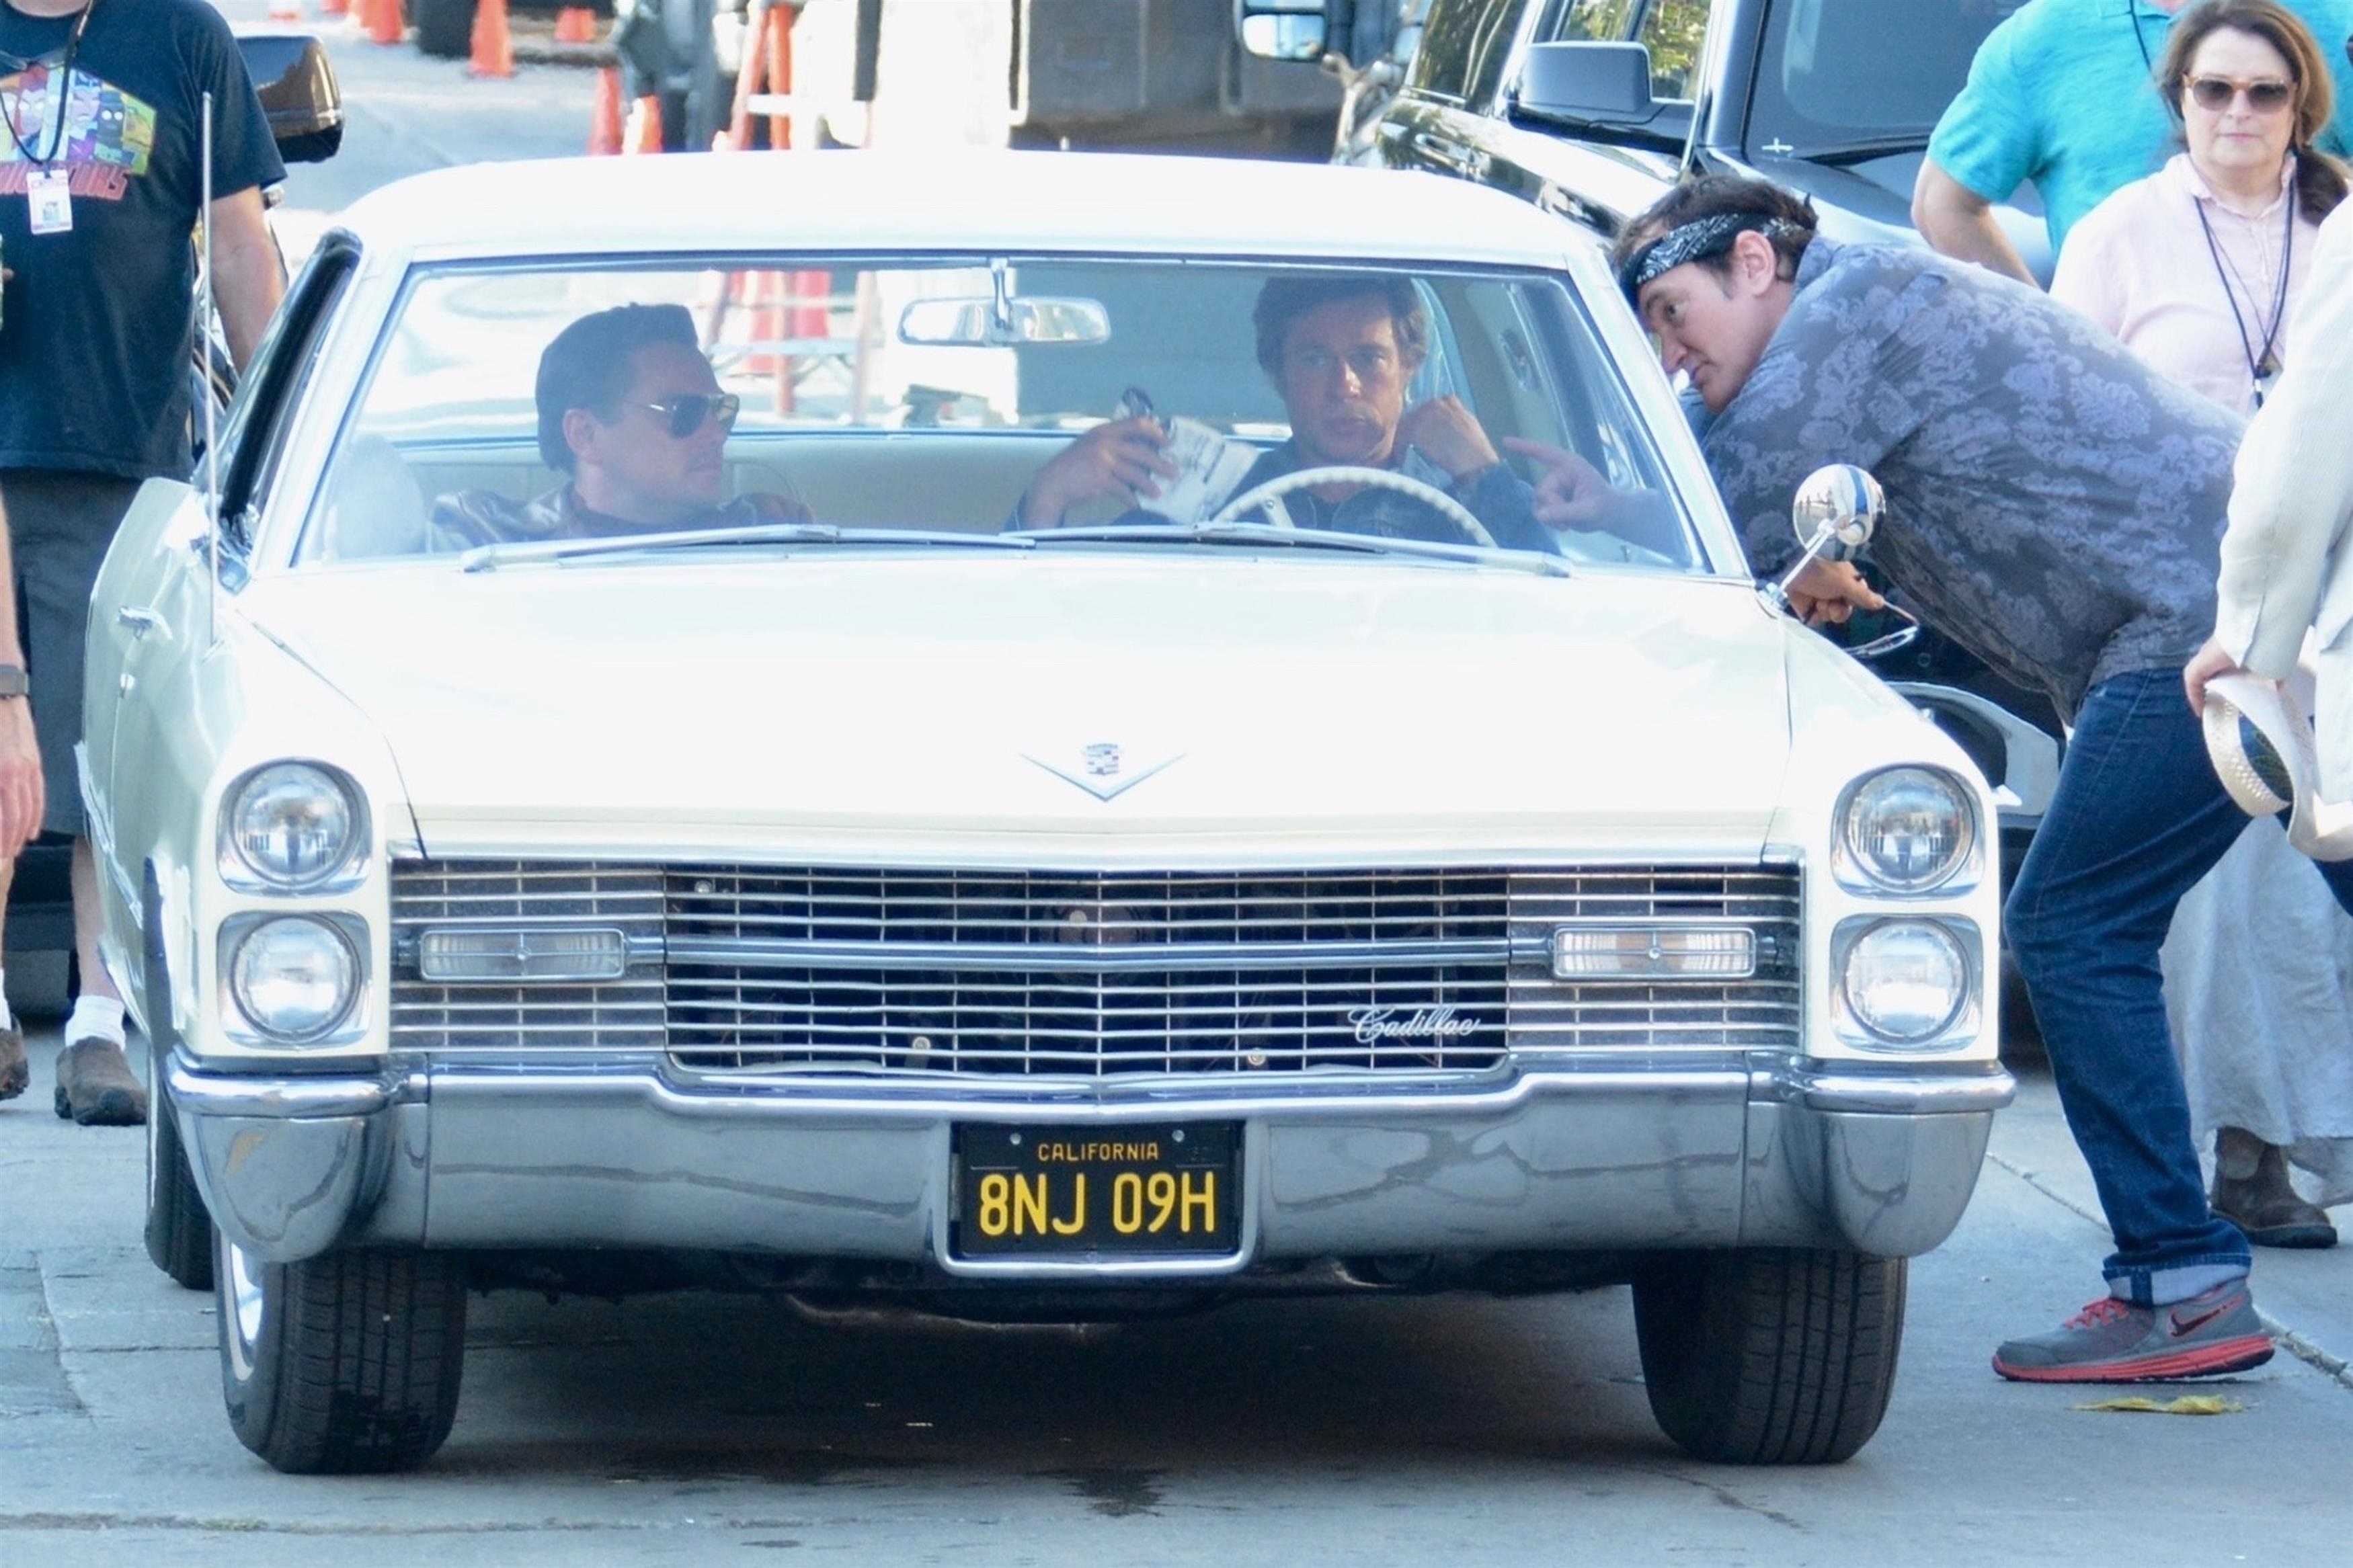 Los Angeles, CA - Leonardo DiCaprio and Brad Pitt were seen on the set of their latest project 'Once Upon a Time In Hollywood' along with director Quentin Tarantino during a busy day of filming in Los Angeles. Pictured: Brad Pitt, Leonardo DiCaprio BACKGRID USA 23 JULY 2018 USA: +1 310 798 9111 / usasales@backgrid.com UK: +44 208 344 2007 / uksales@backgrid.com *UK Clients - Pictures Containing Children Please Pixelate Face Prior To Publication*